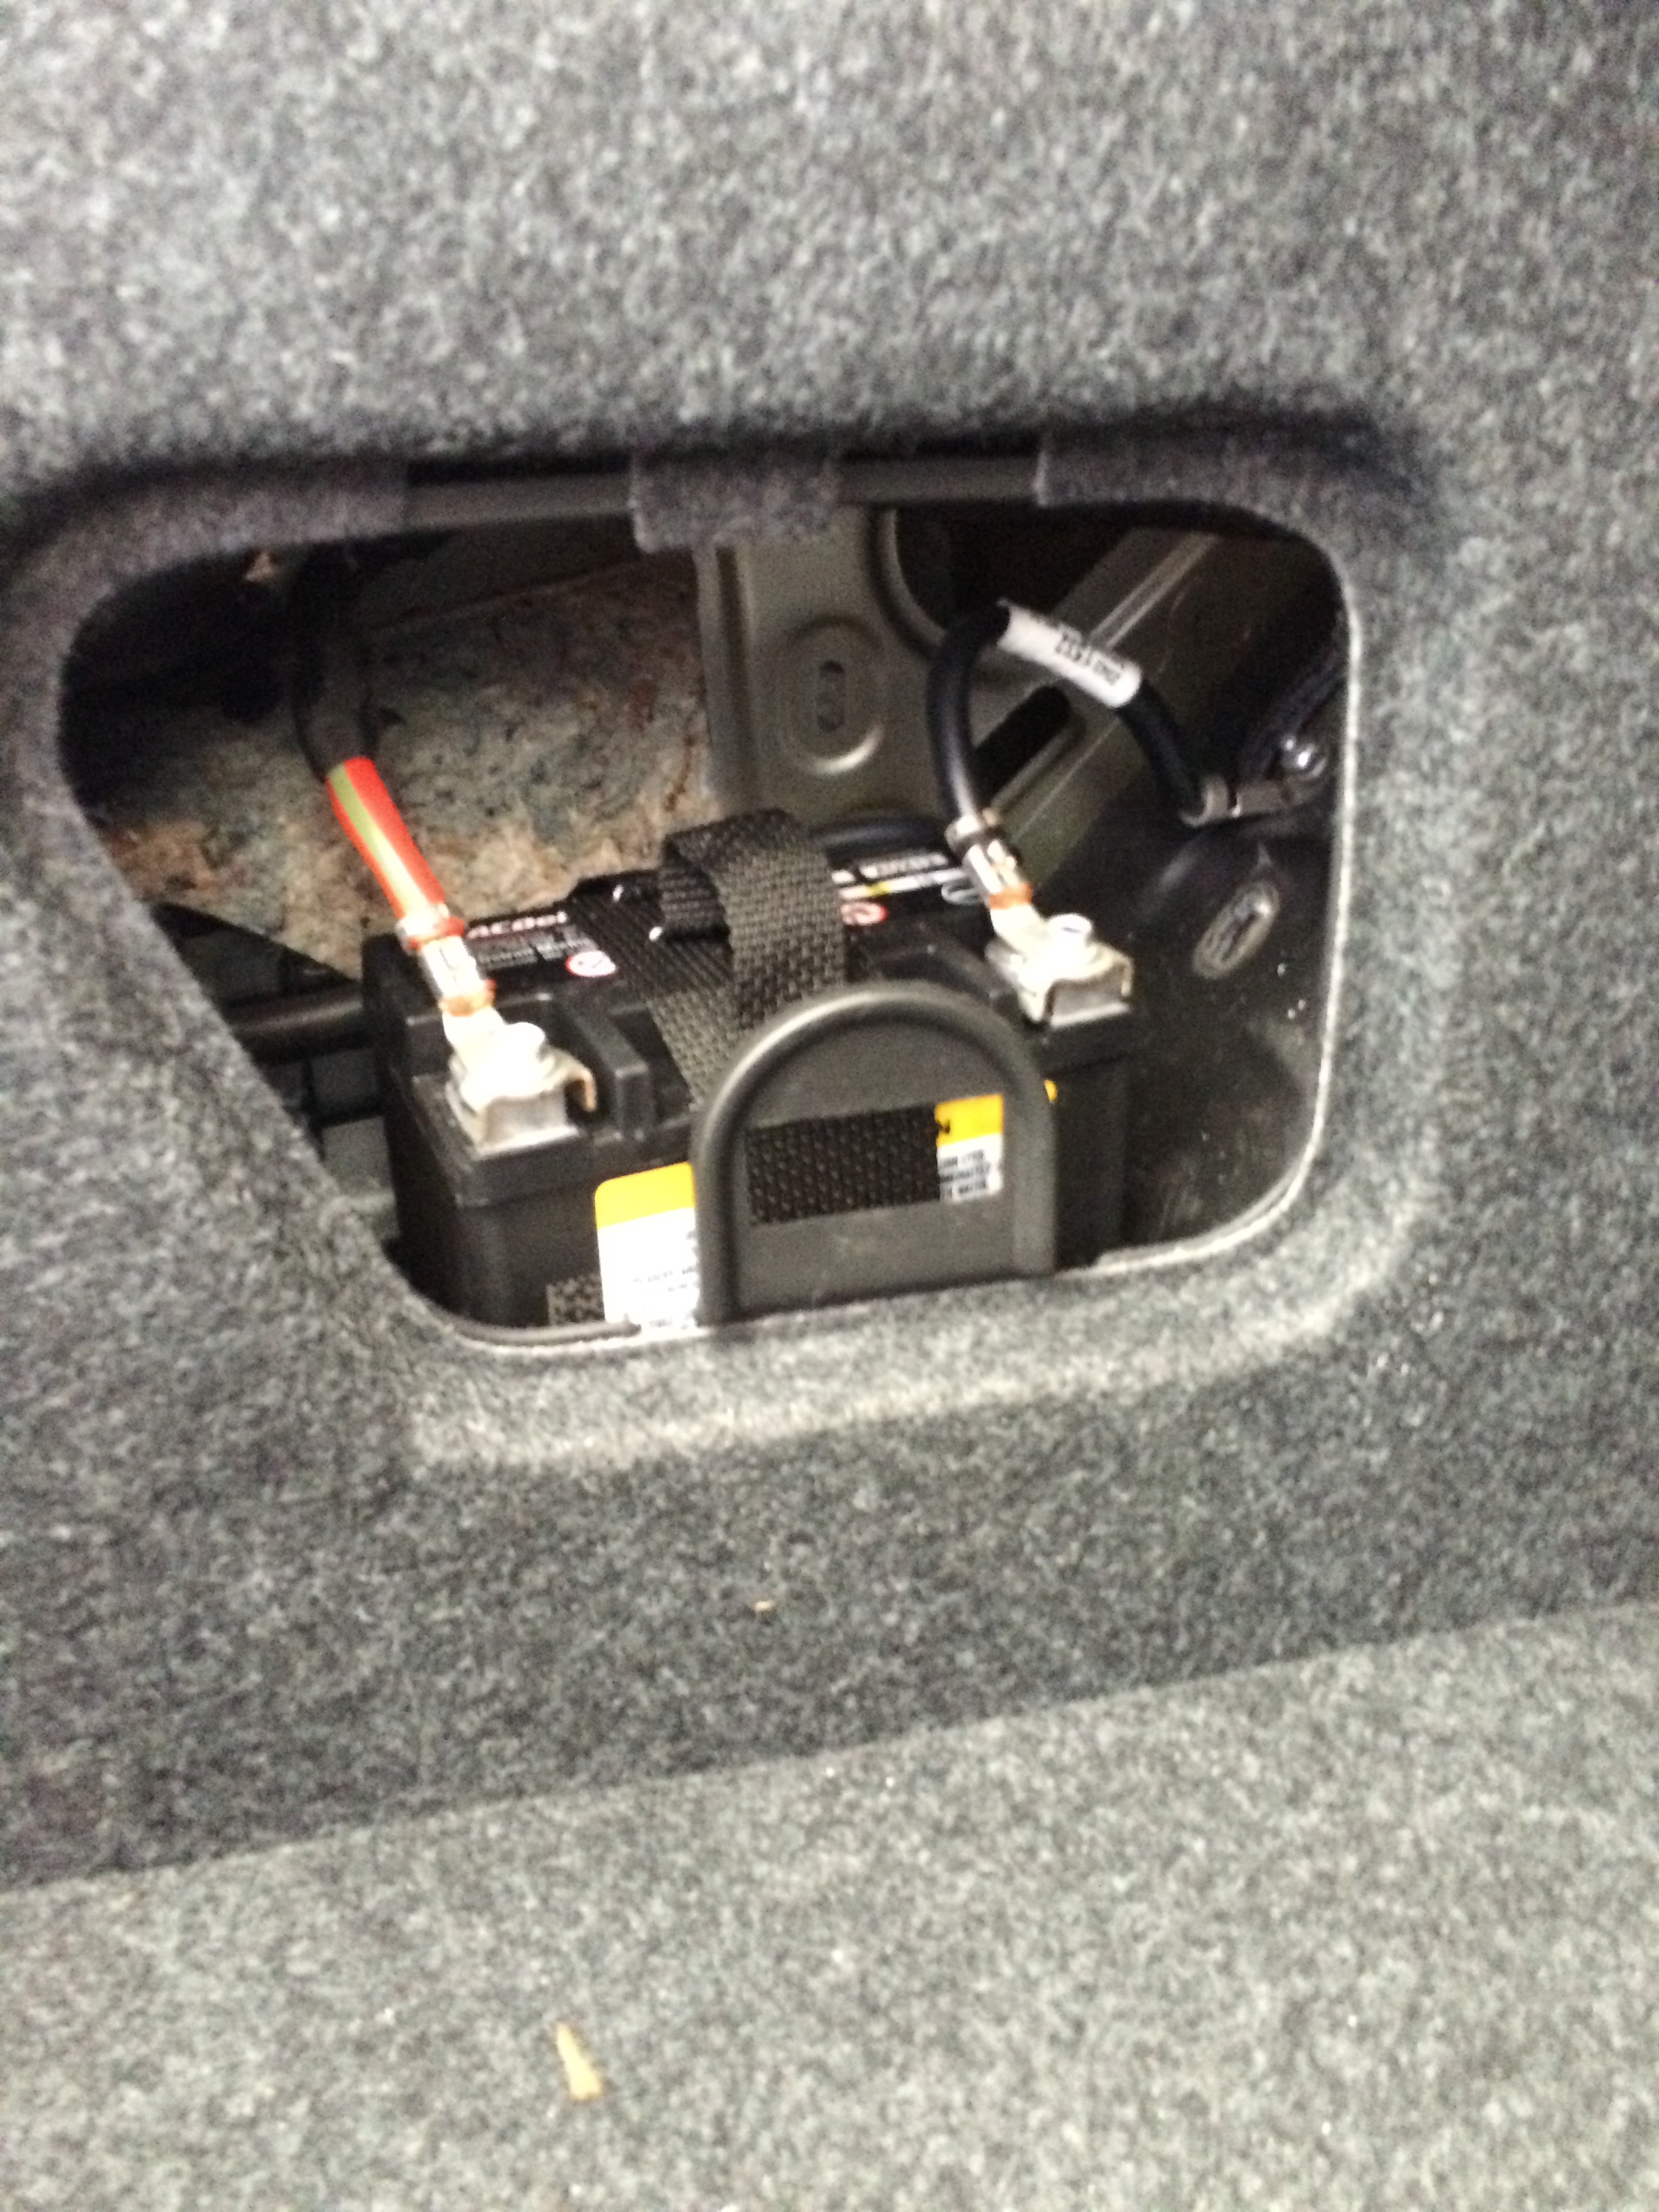 2015 chevy malibu aux battery truck safety extrication 2015 chevrolet malibu auxiliary power supply boron extrication 2013 Chevrolet Malibu Fuse Box at n-0.co